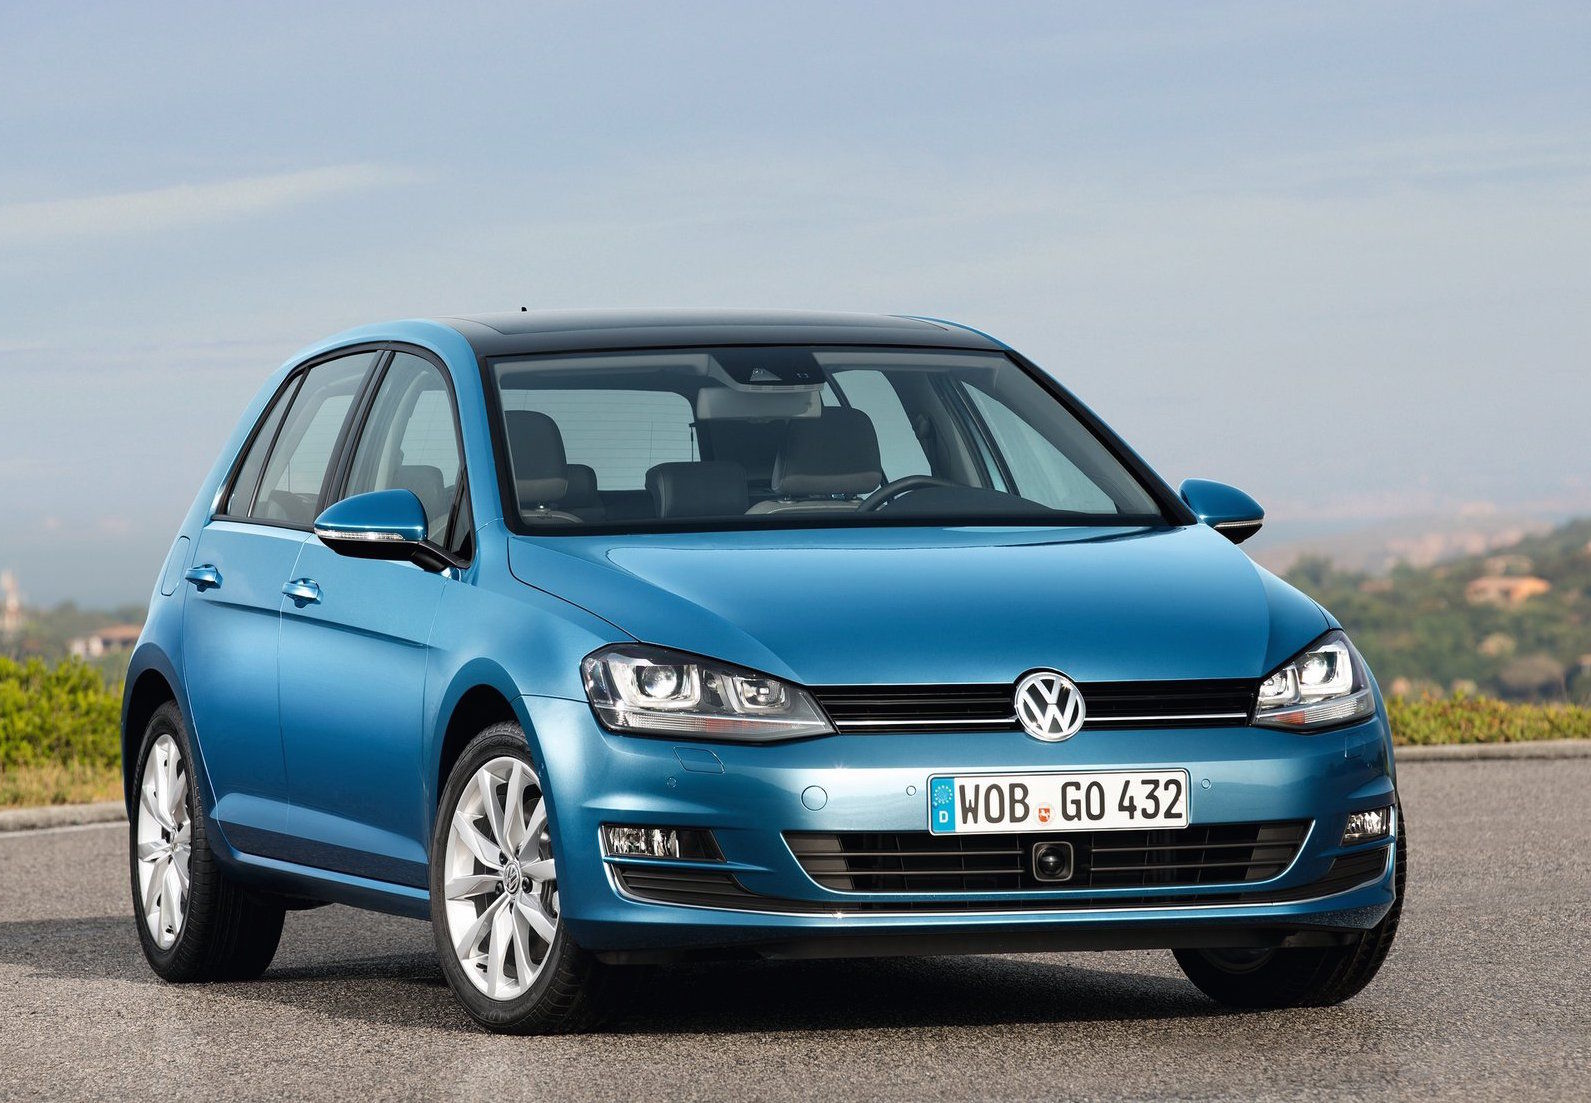 Volkswagen cars have become the most popular on the basis of the I-st ​​quarter of the year 2016